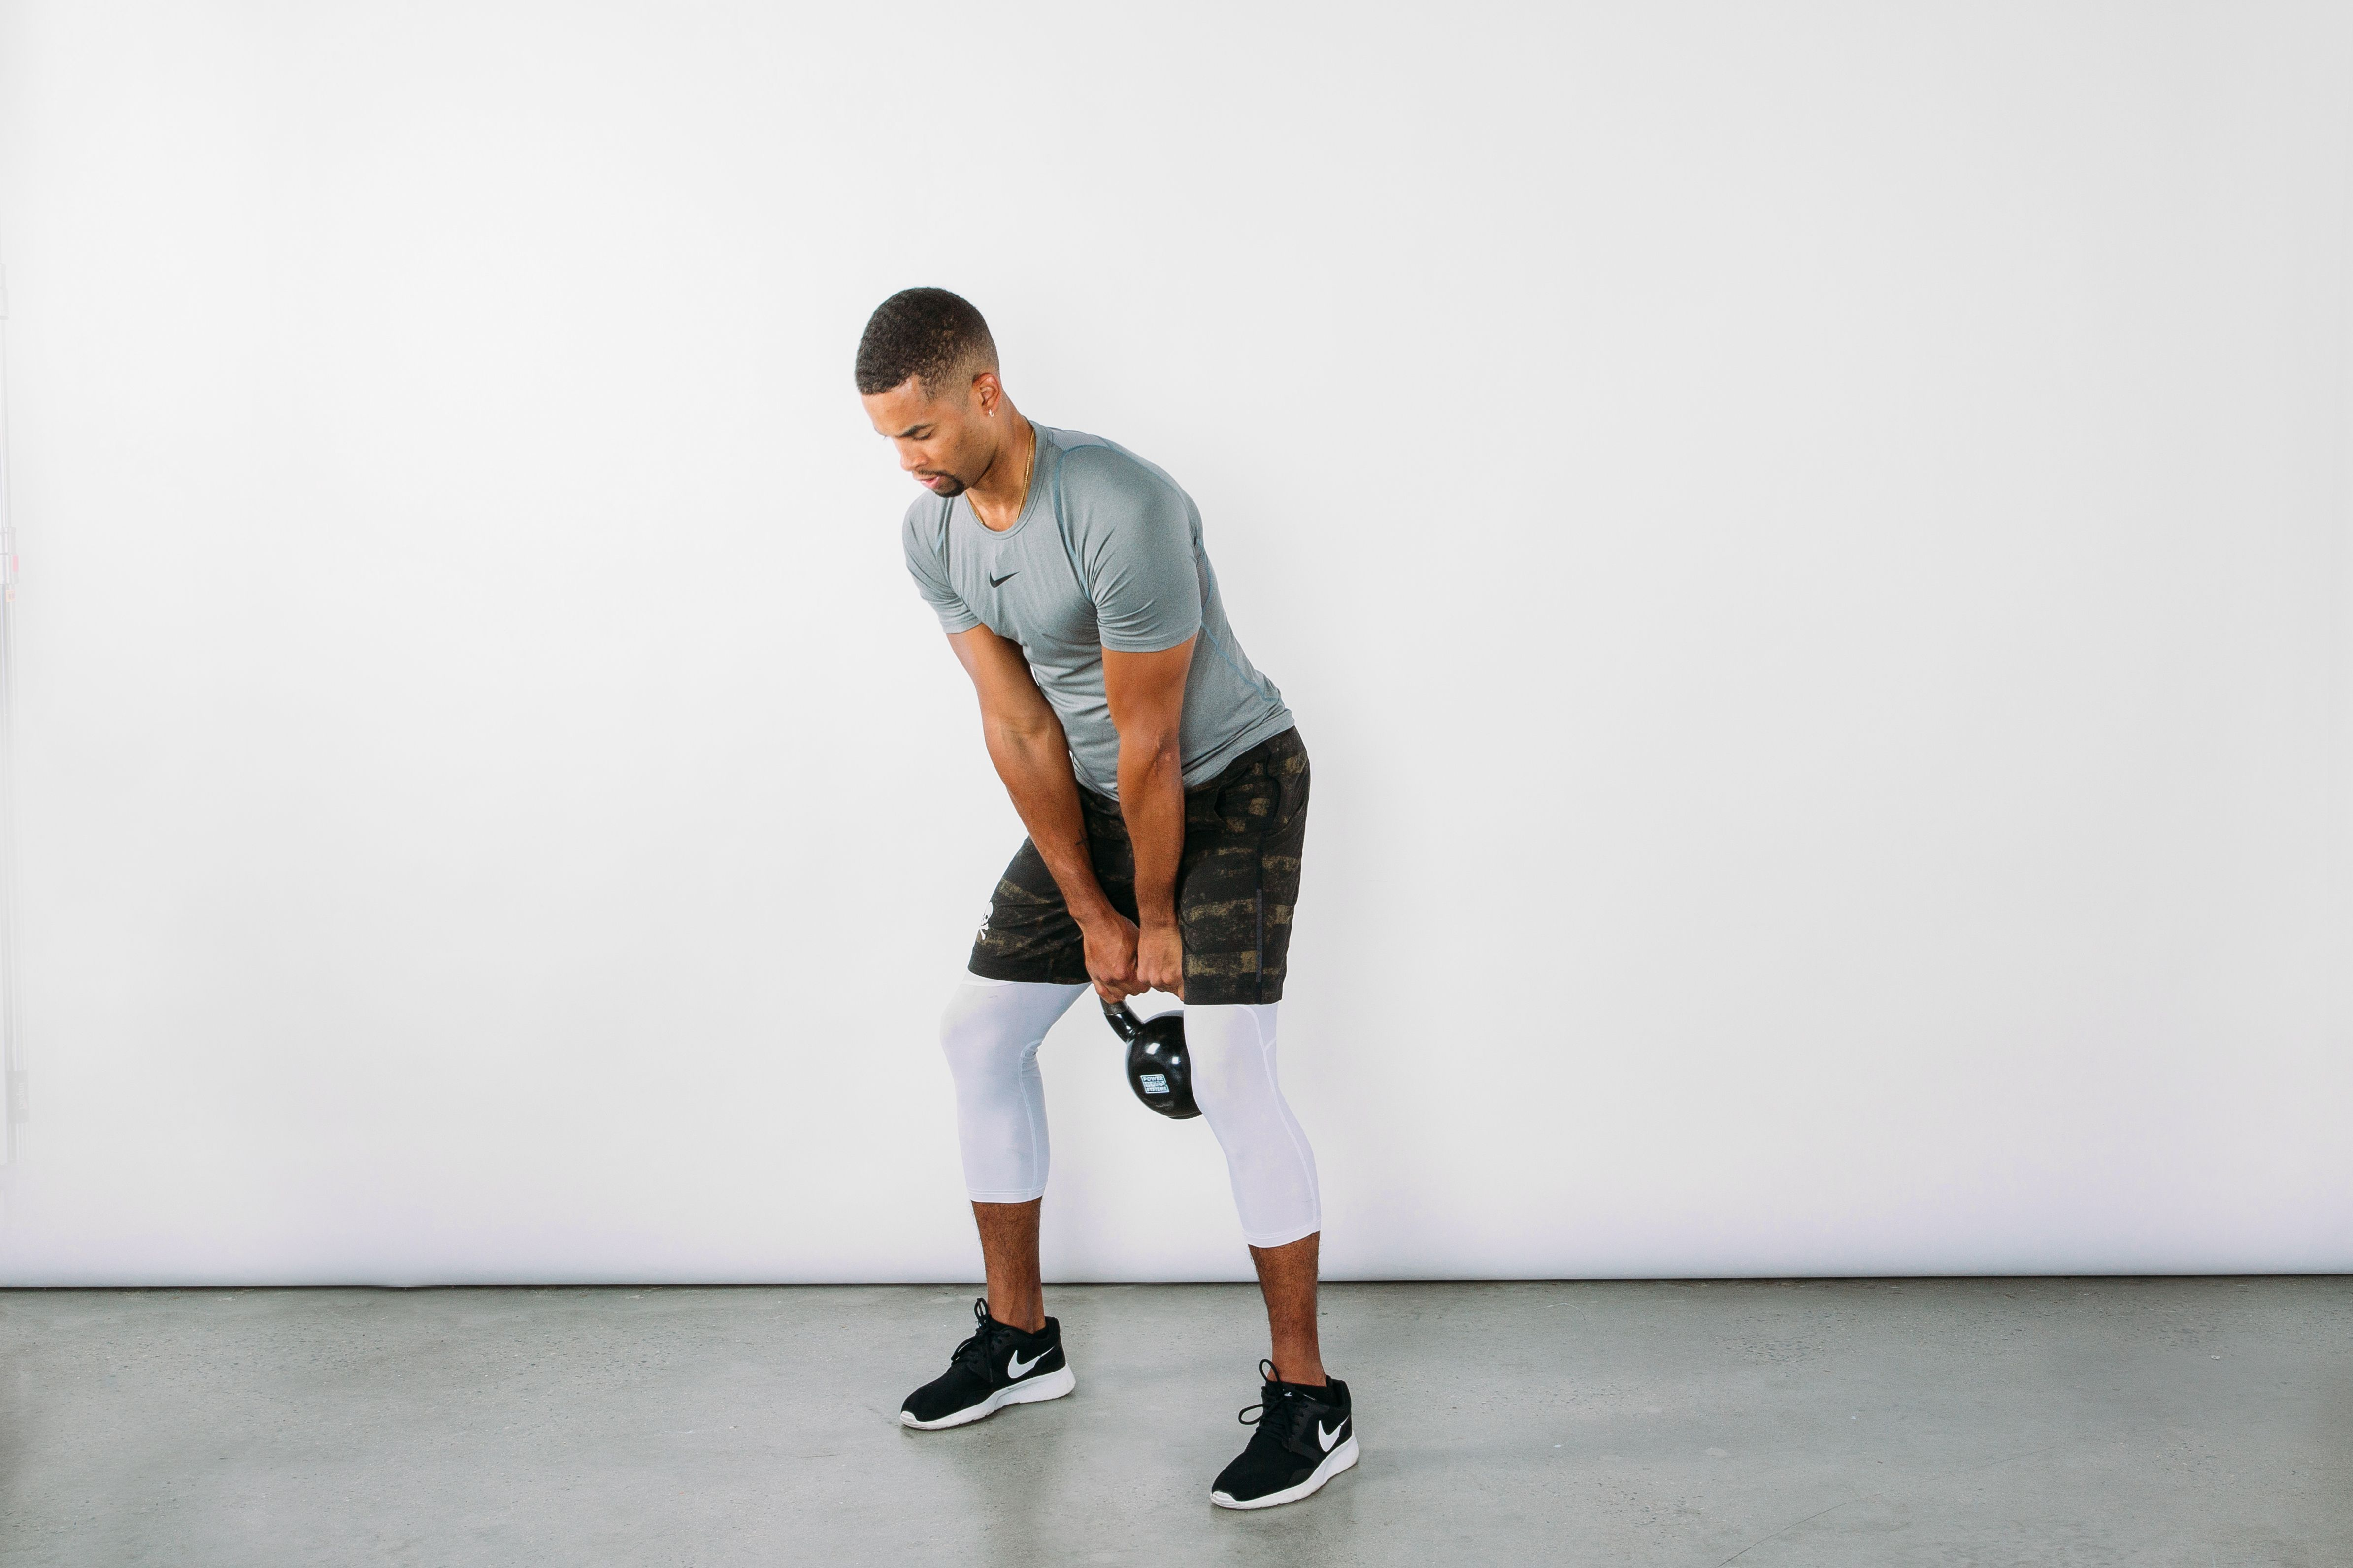 3 Ways to Perfect Your Kettlebell Swing